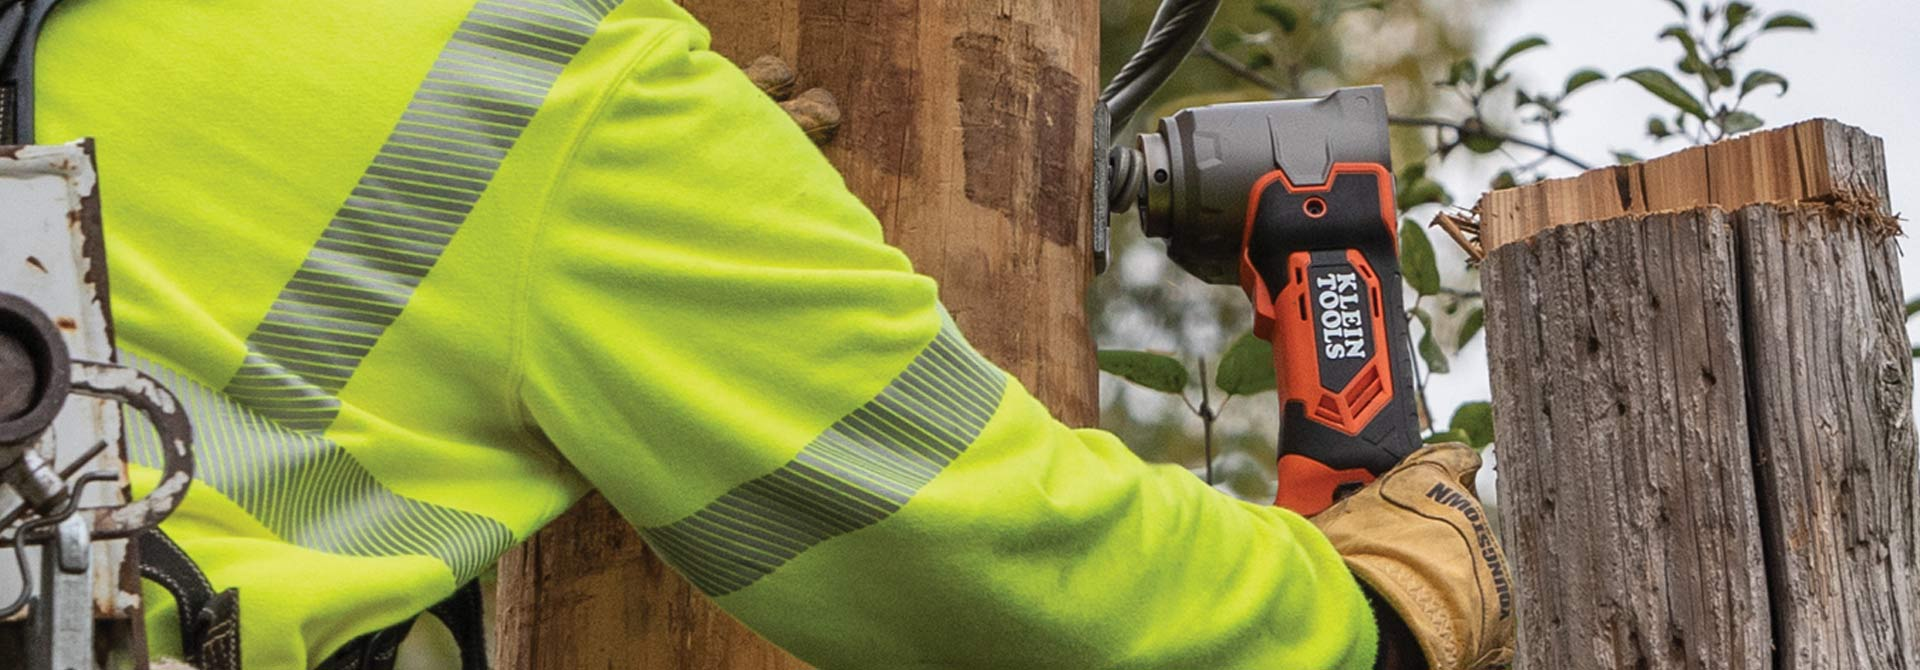 90-Degree Impact Wrench